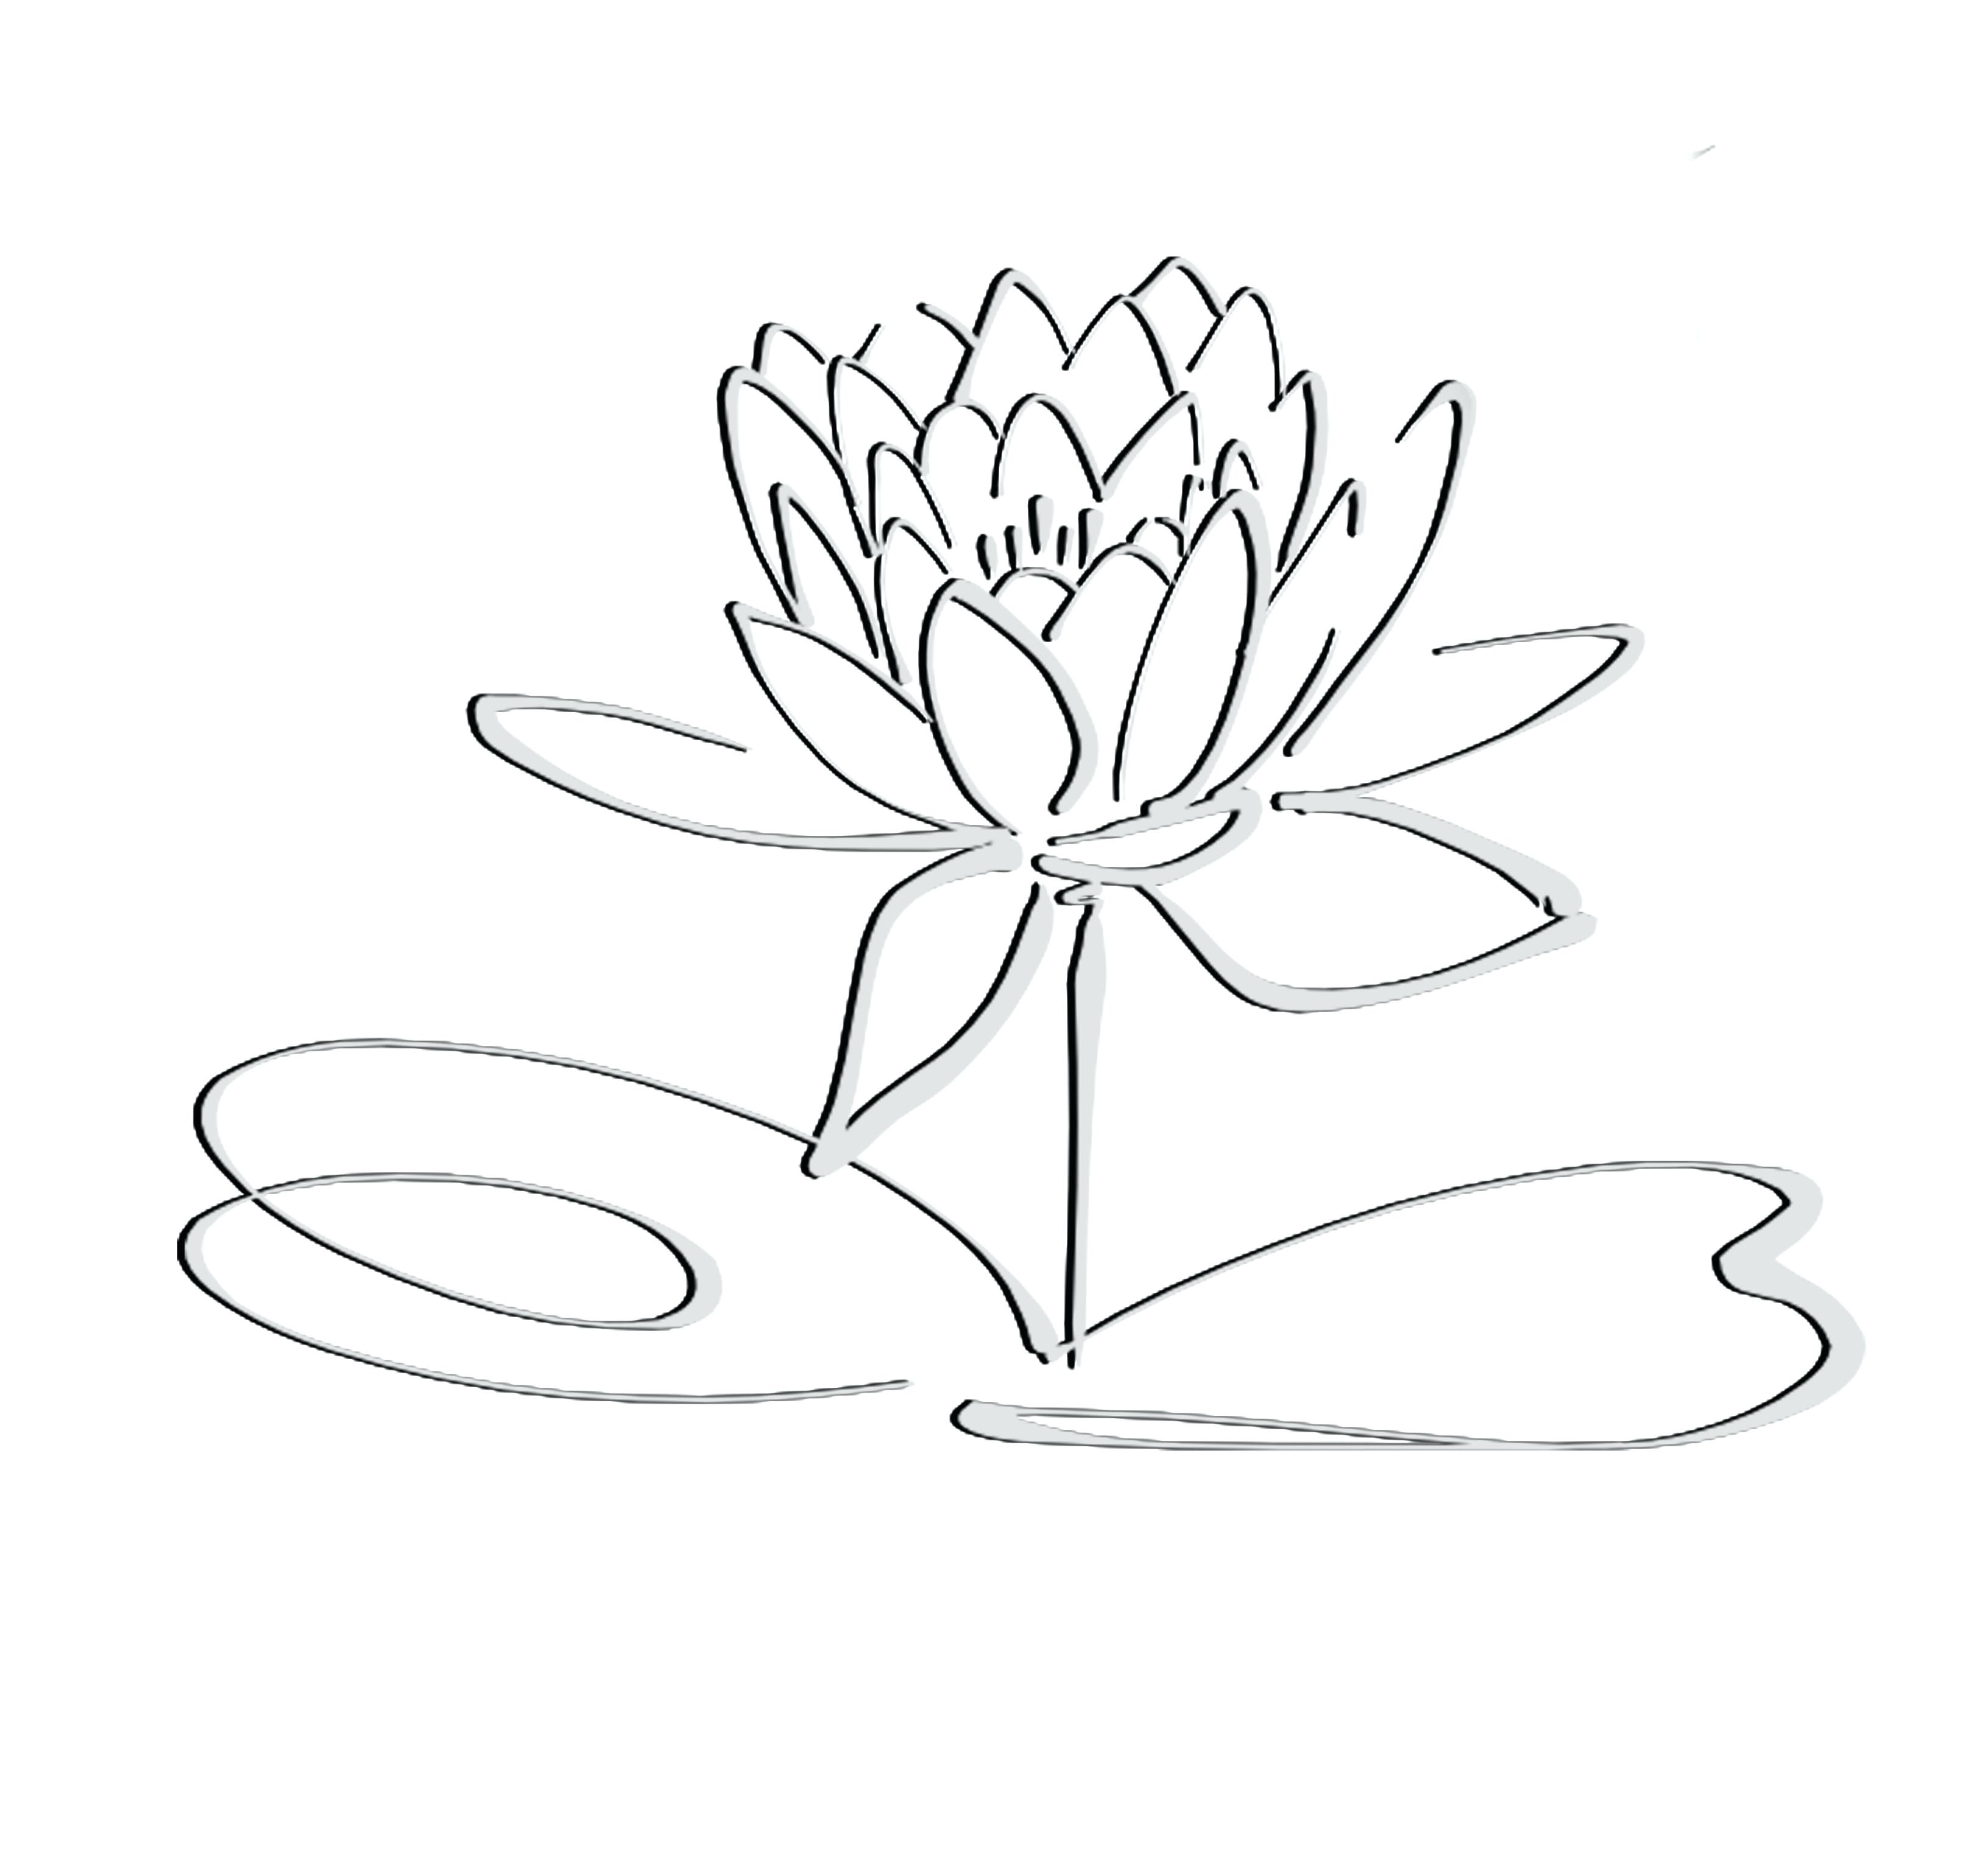 Lotus Drawing Images at GetDrawings.com | Free for personal use ...